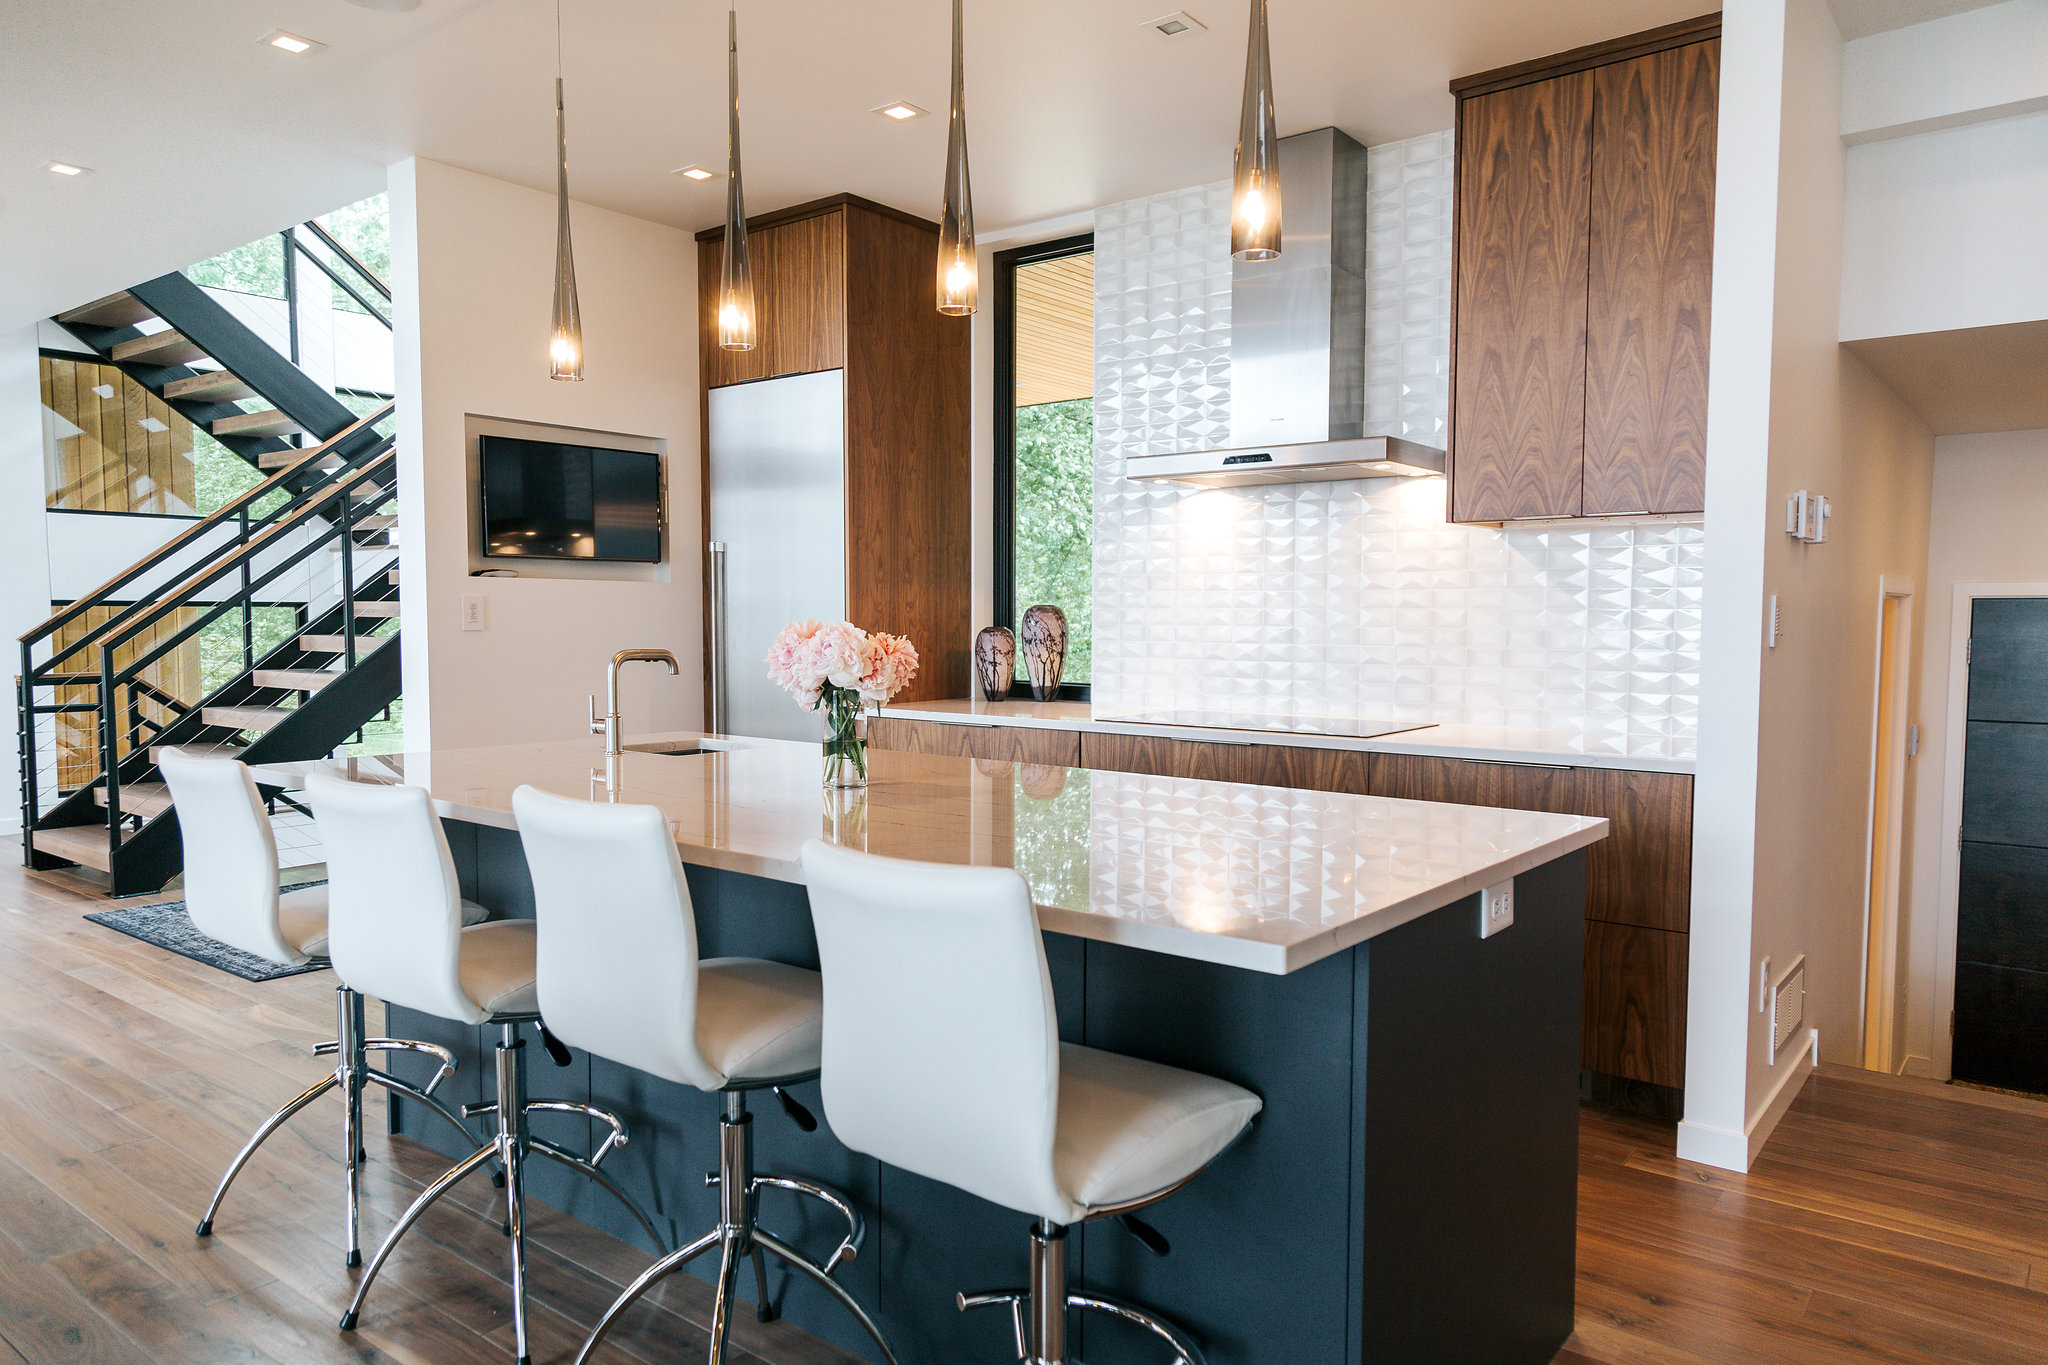 Admirable Walnut Kitchen With Painted Island Alpine Cabinetry Home Interior And Landscaping Ologienasavecom